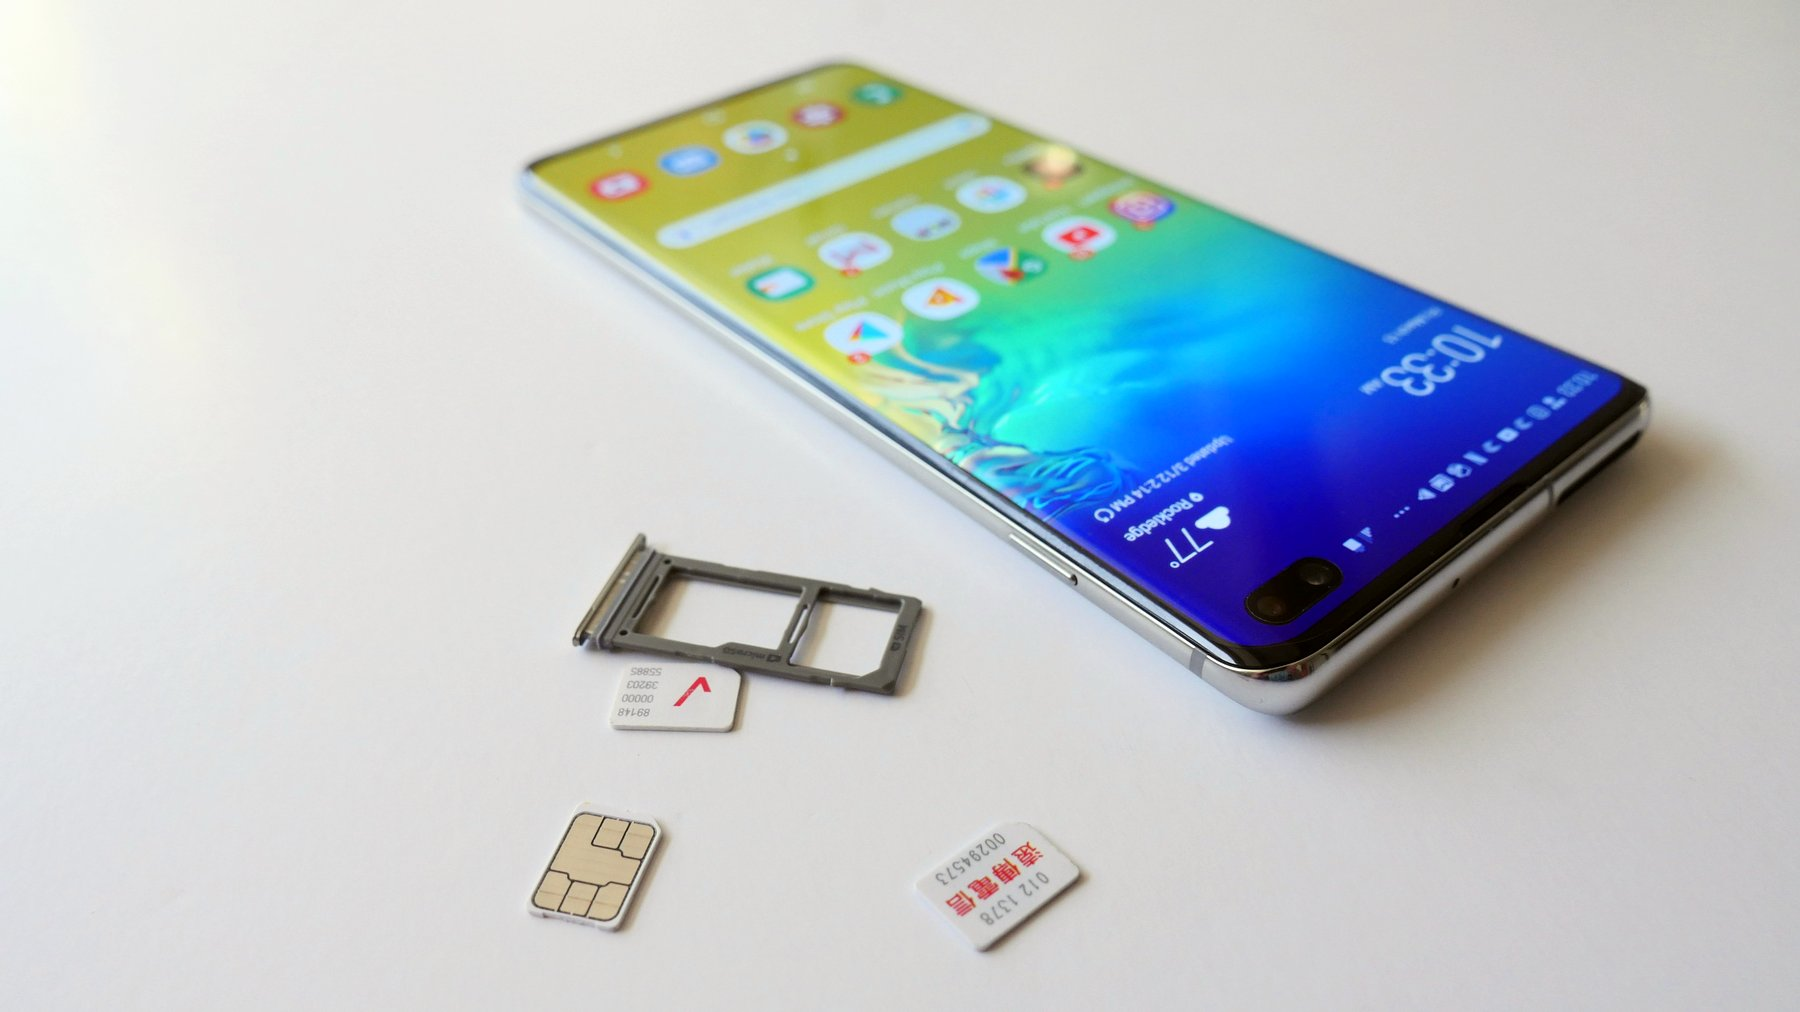 How to SIM unlock the Samsung Galaxy S10